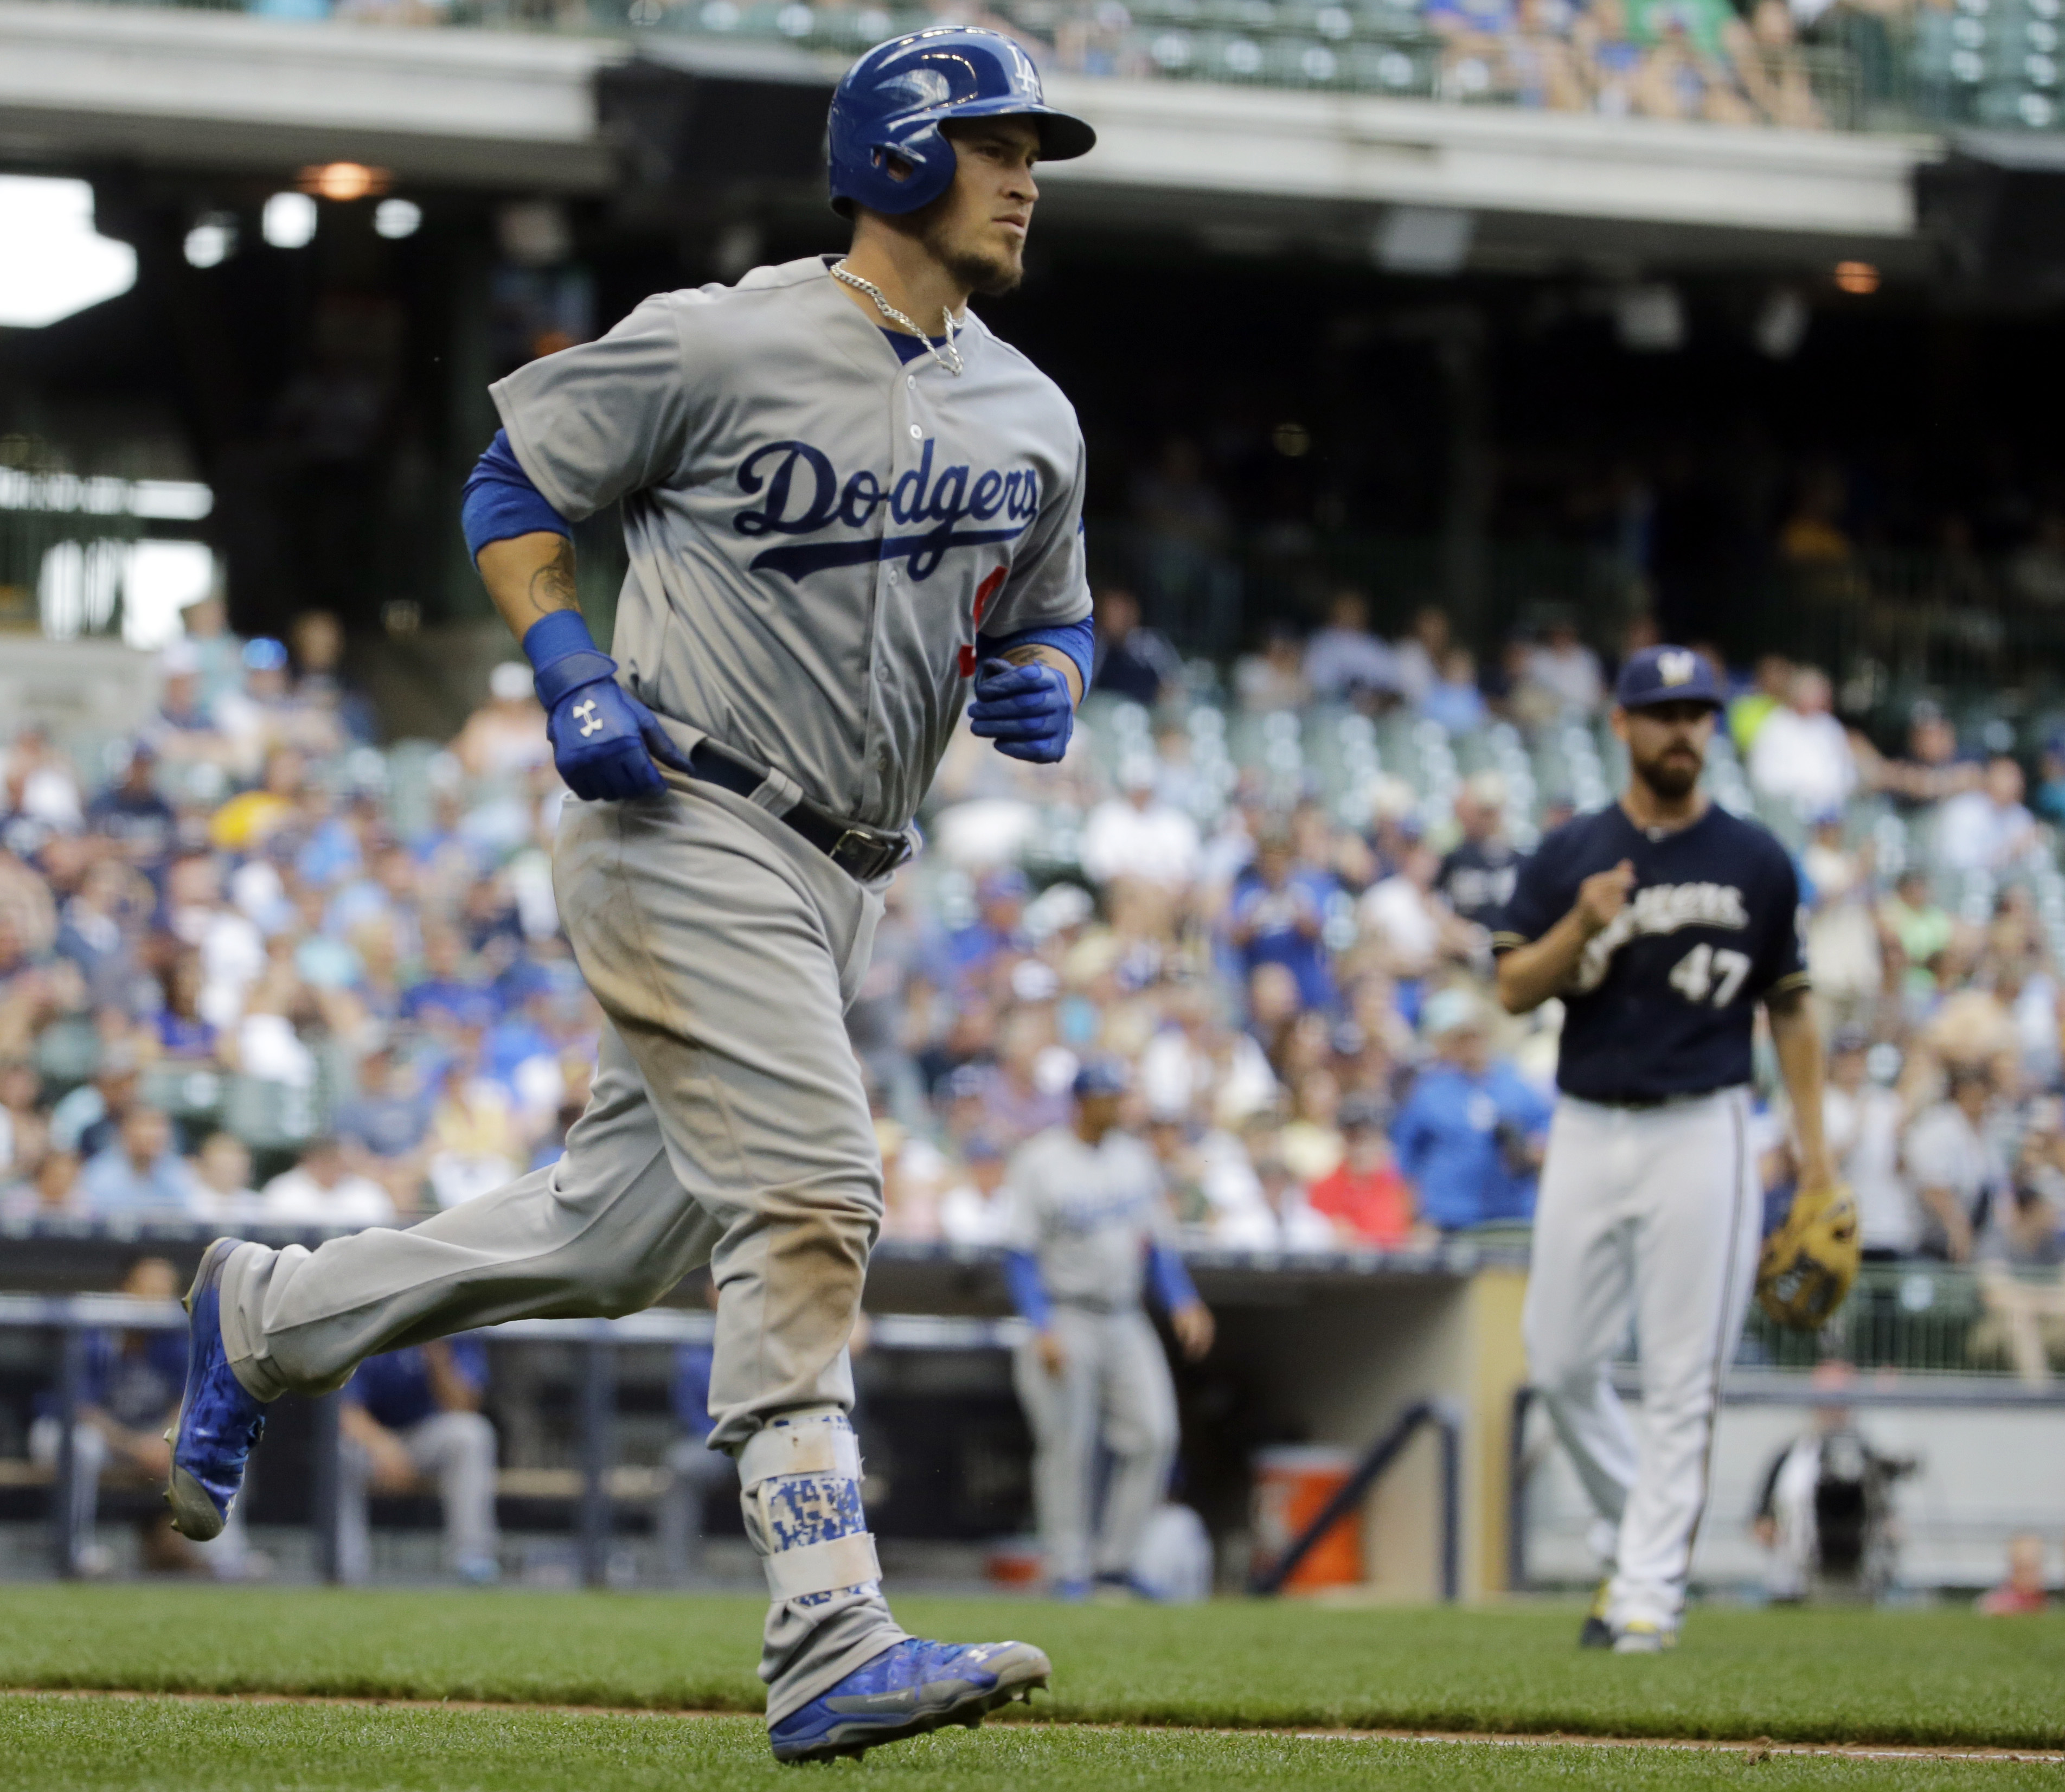 Milwaukee Brewers relief pitcher Rob Wooten (47) watches as Los Angeles Dodgers' Yasmani Grandal rounds the bases after hitting a three-run home run during the eighth inning of a baseball game Thursday, May 7, 2015, in Milwaukee. (AP Photo/Morry Gash)